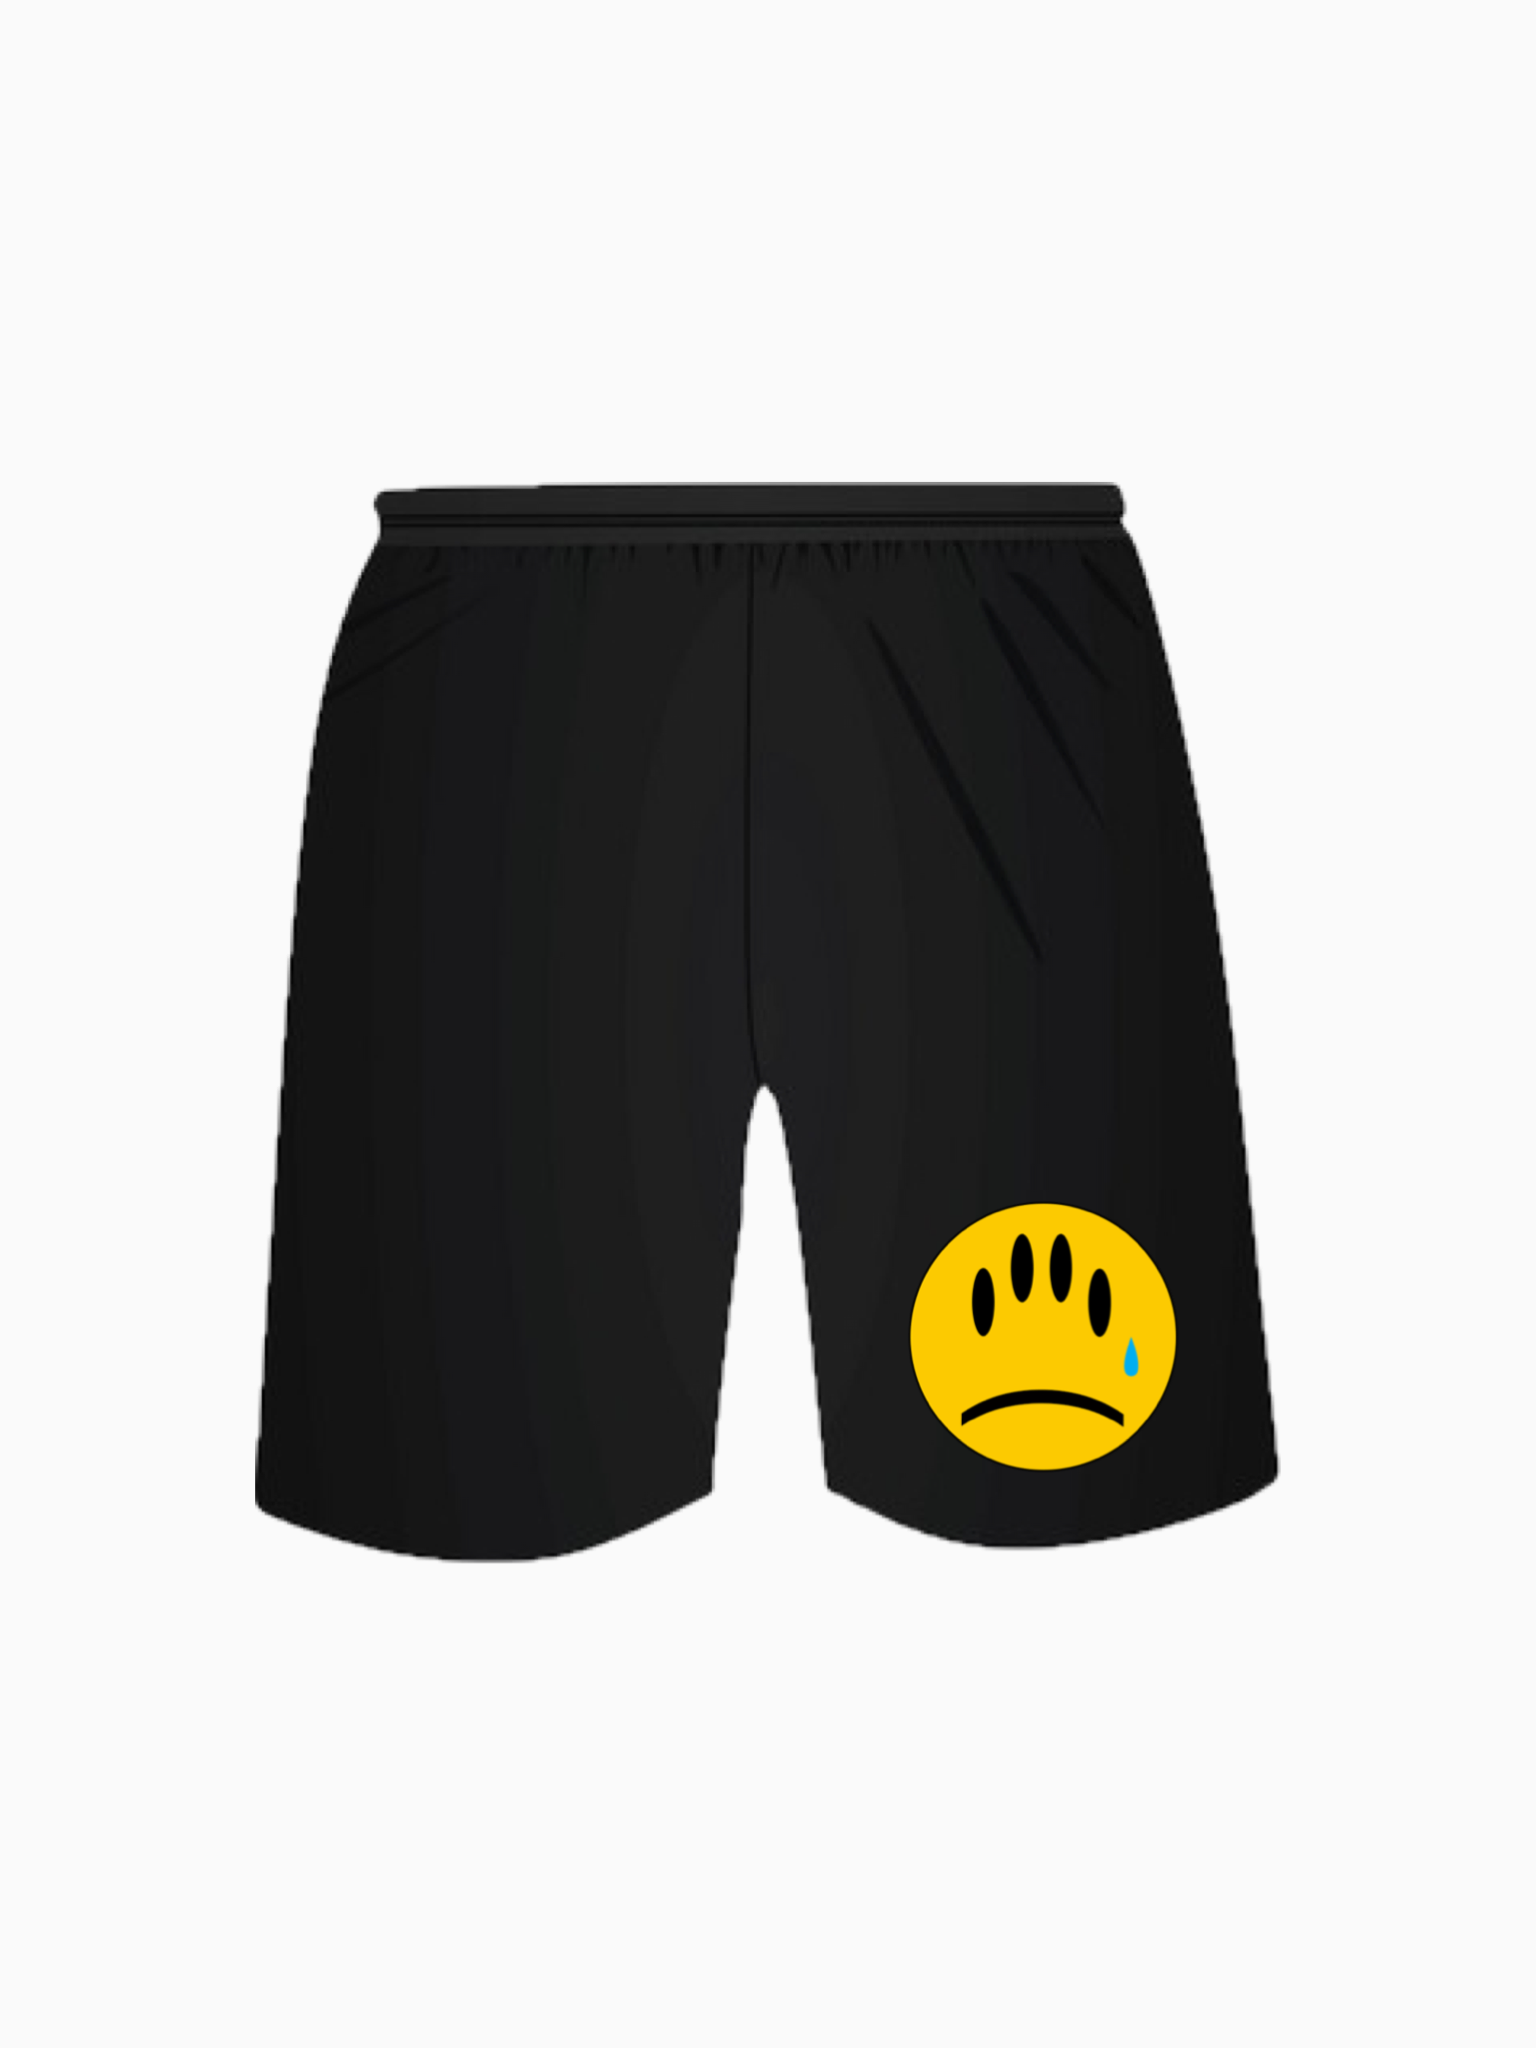 """FAKE SMILES"" Jogger Shorts - Black"